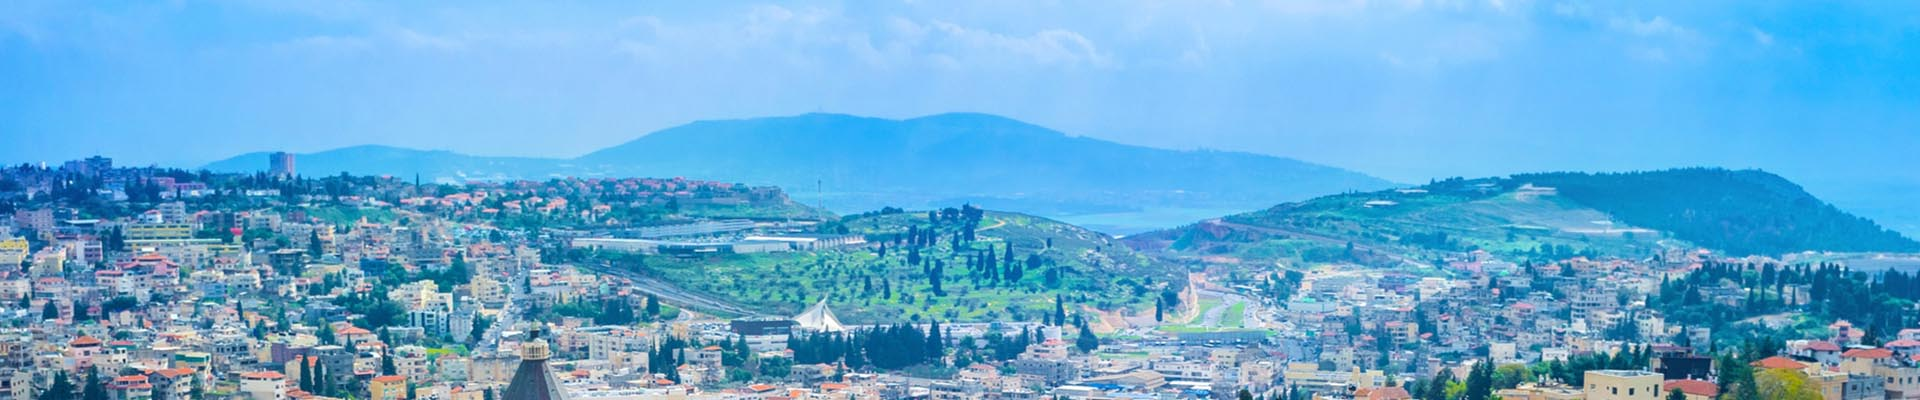 8 Day Israel Christian Private Tour Galilee Focus